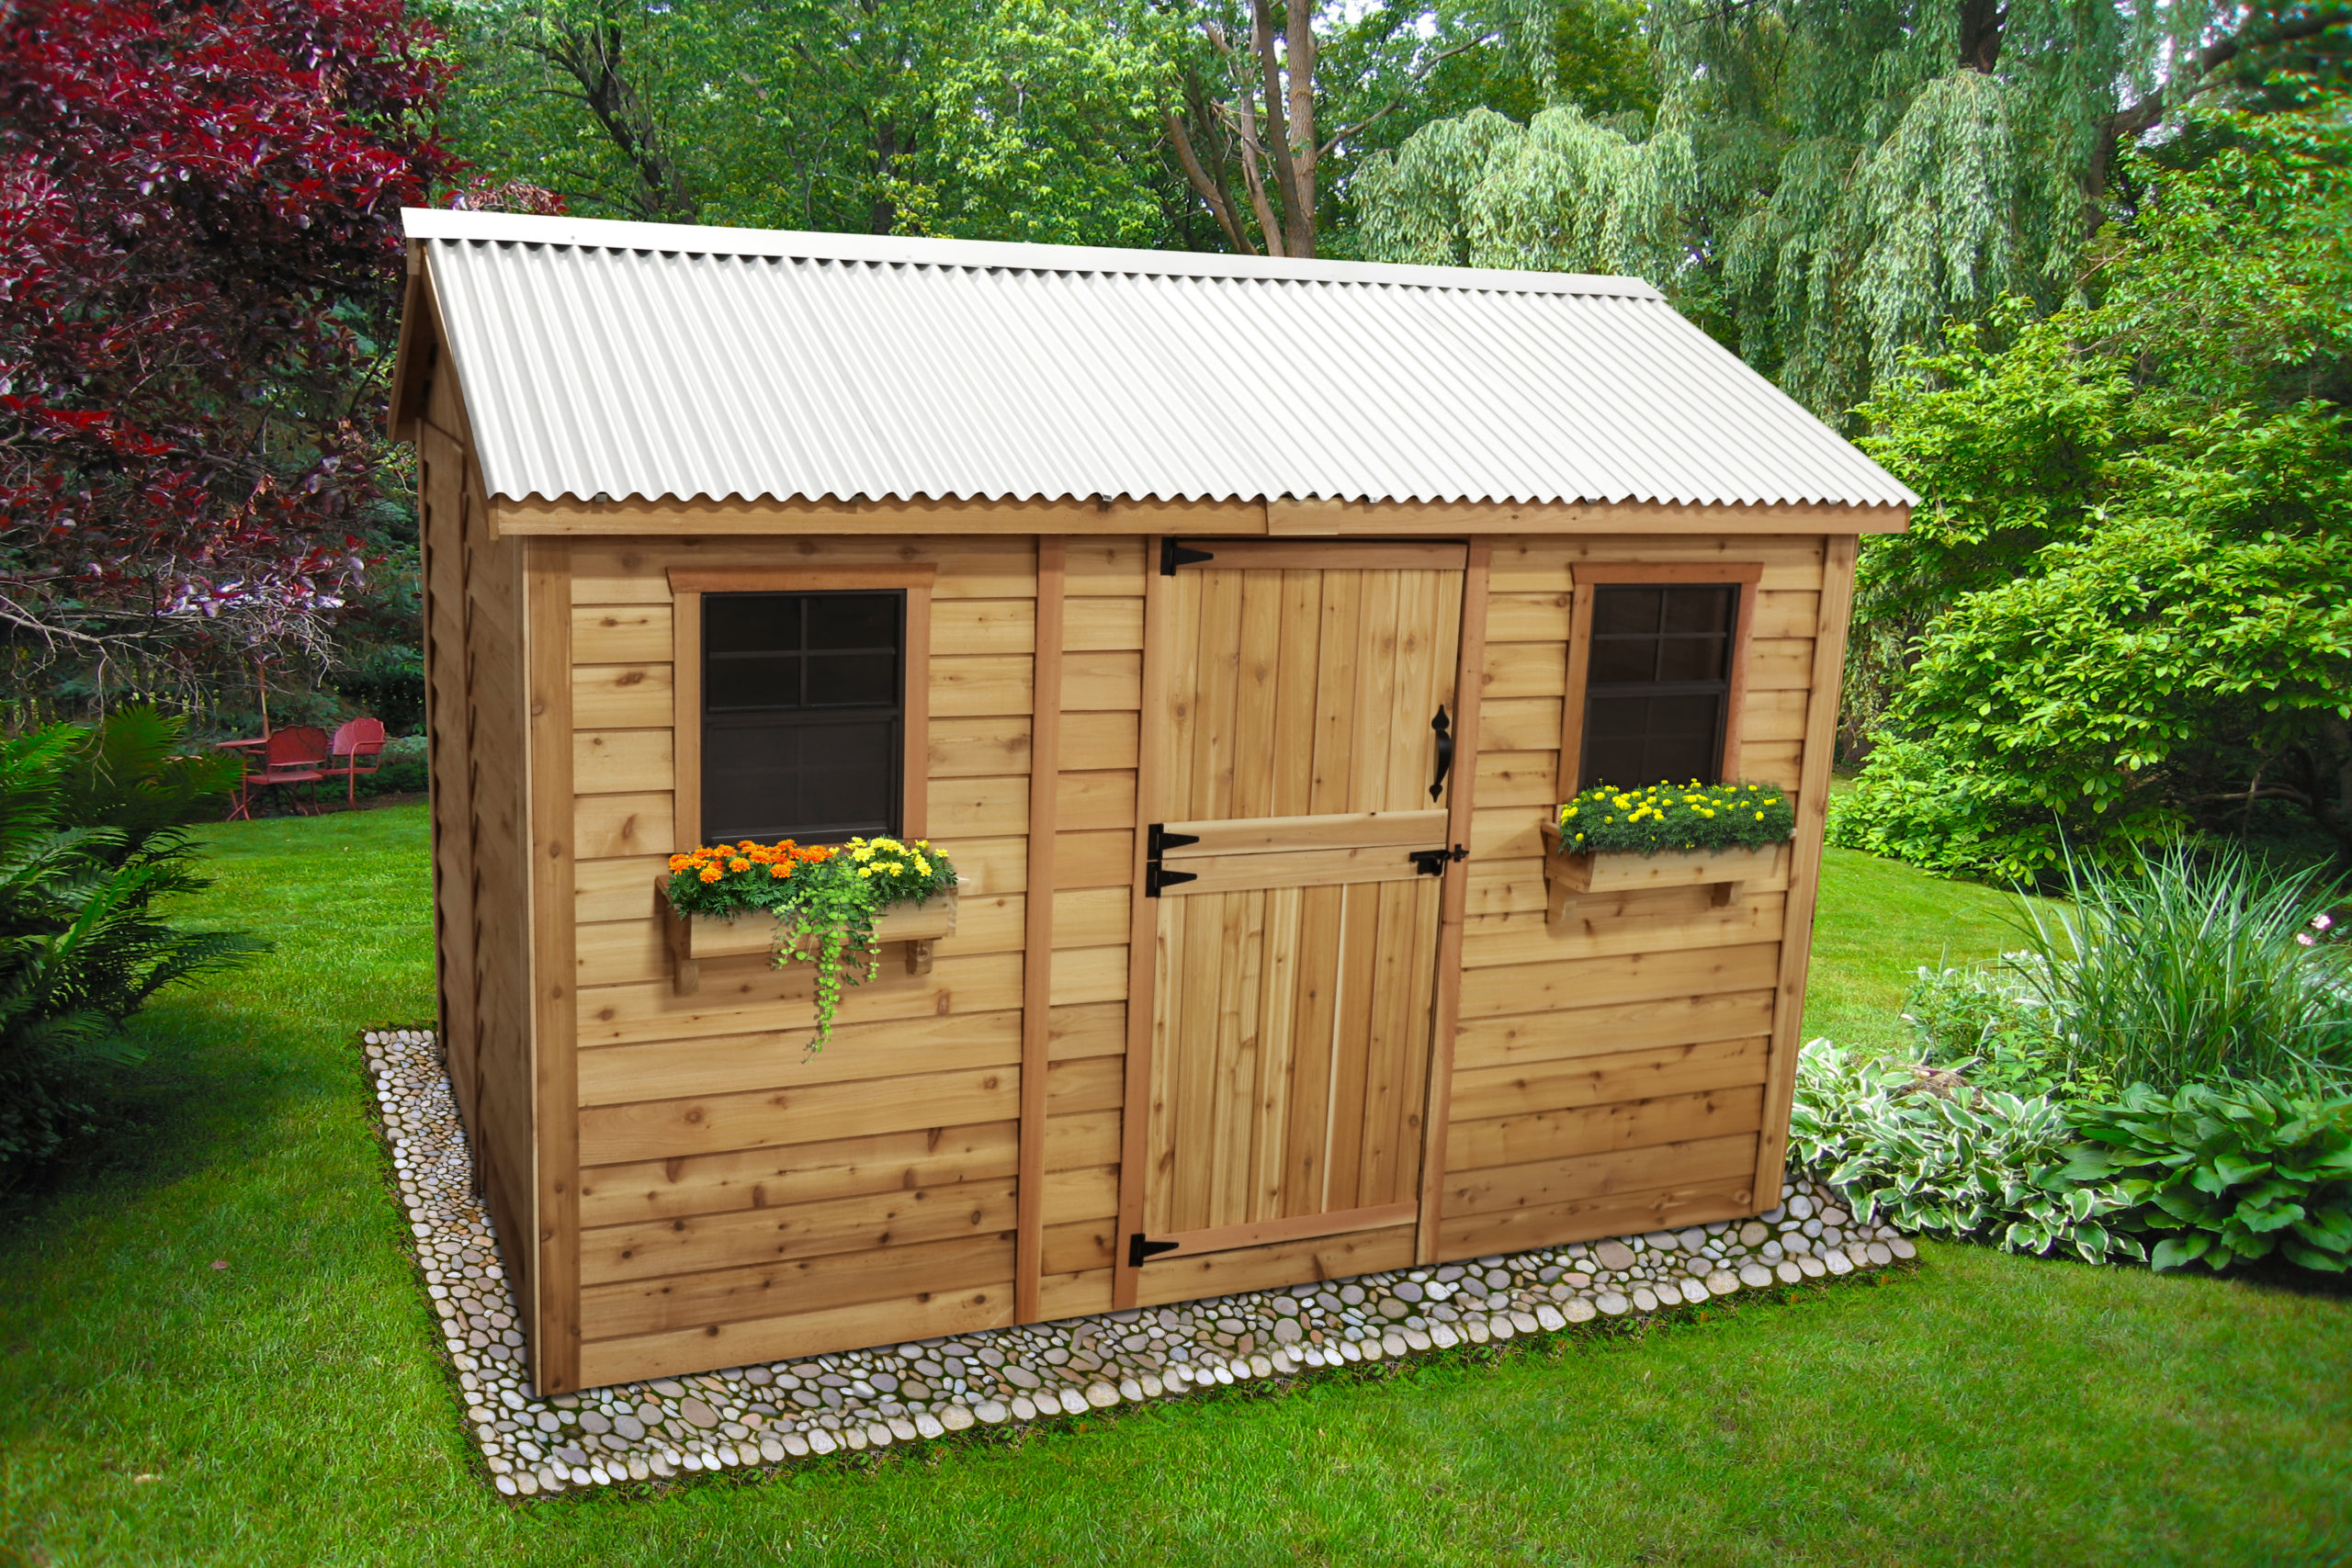 Large Shed for Storage   12x8 - Outdoor Living Today on Outdoor Living Today Cabana id=86145